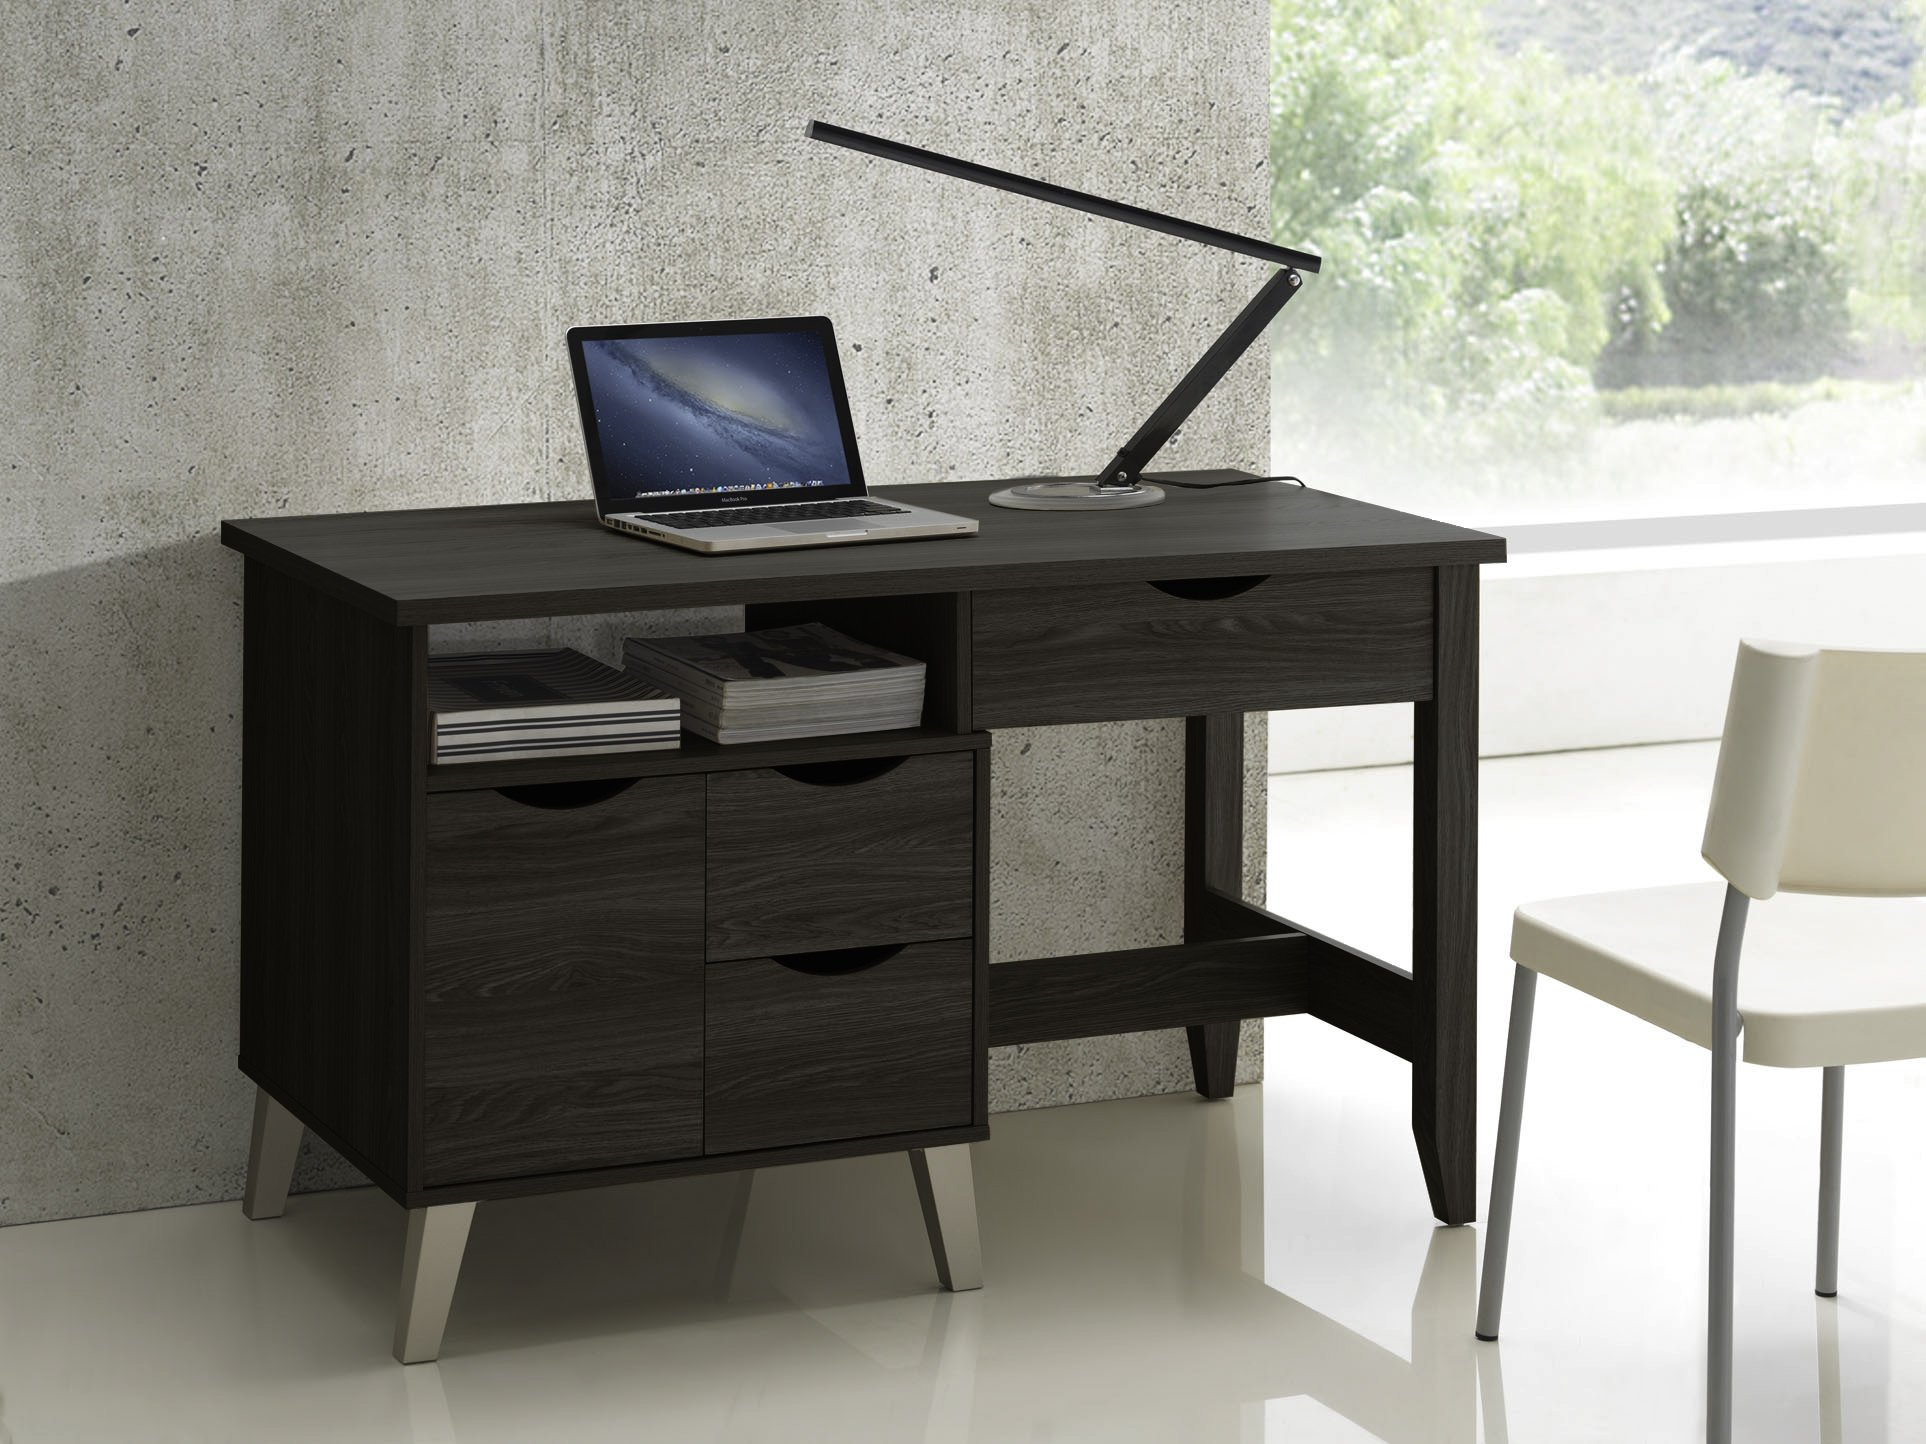 Baxton Studio McKenzie Modern Contemporary Wood 3-Drawer Home Office Study Desk with Two Open Shelves & Two Shelves with Wood Door, Dark Brown